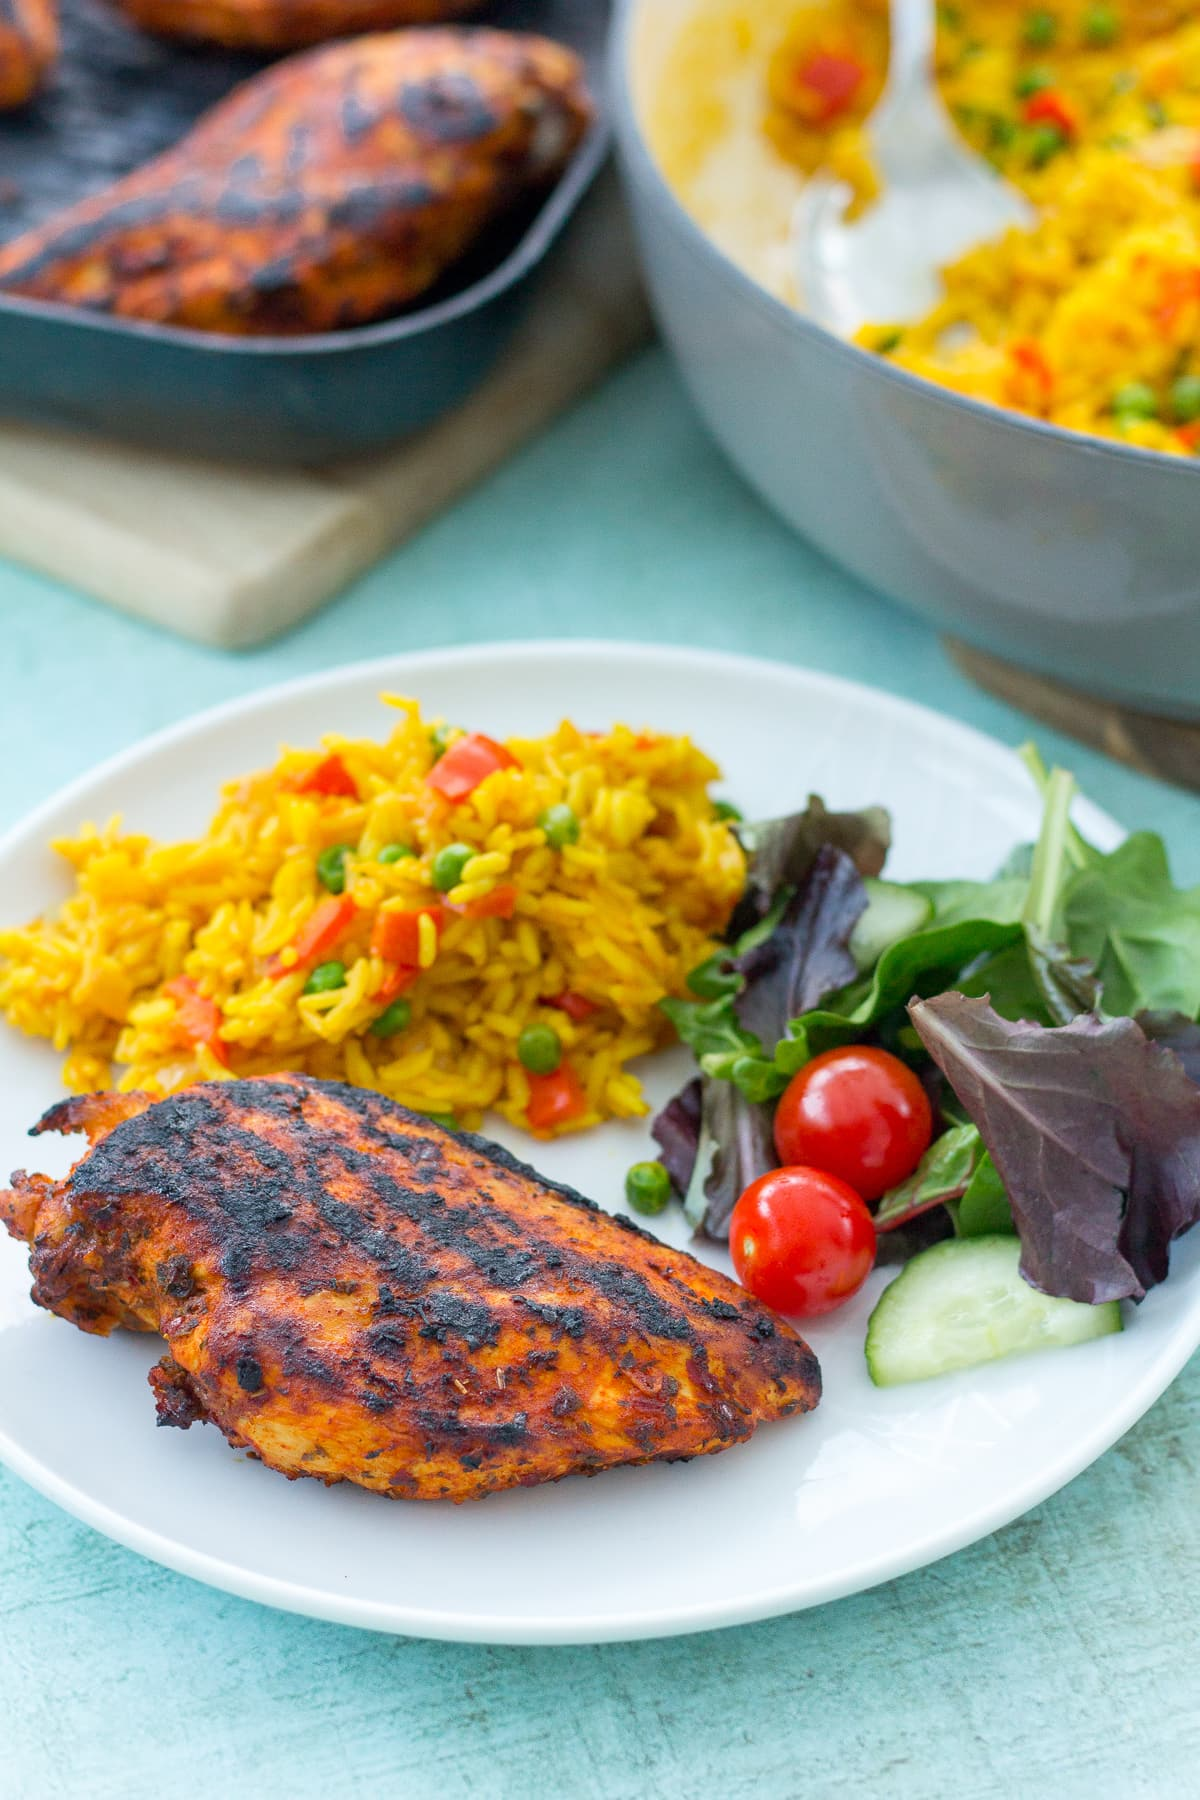 Homemade Nandos Spicy Rice and Easy Peri Peri Chicken Breasts served together.